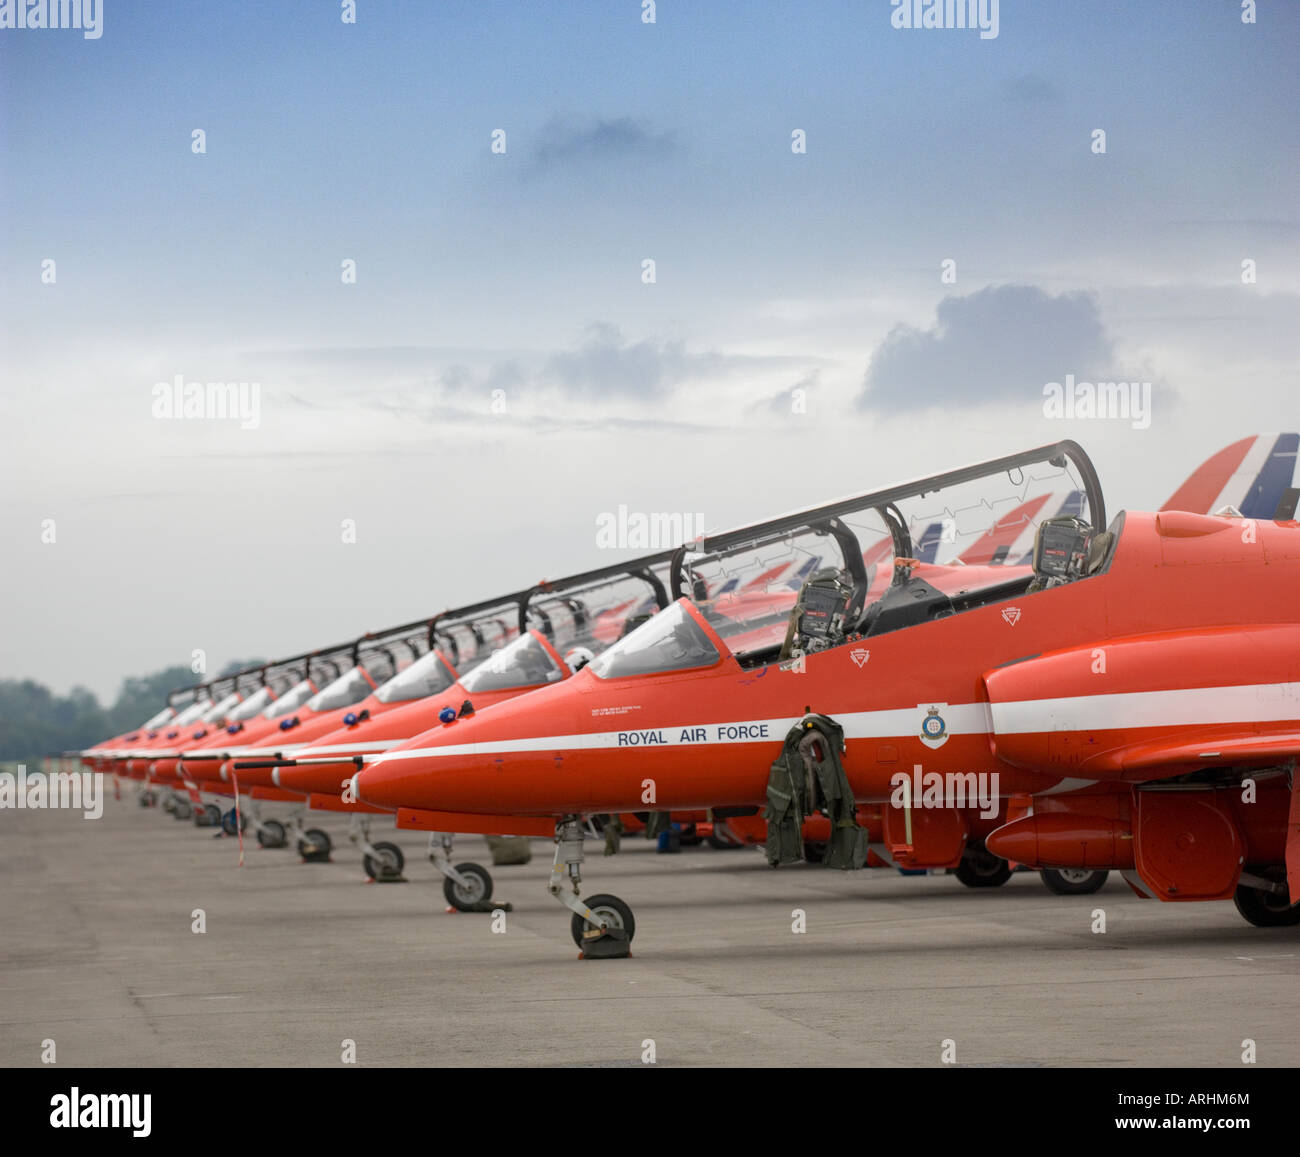 The Red Arrows RAF Formation Display Team Hawk Aircraft Parked Canopies Open Noses Aligned On Pad